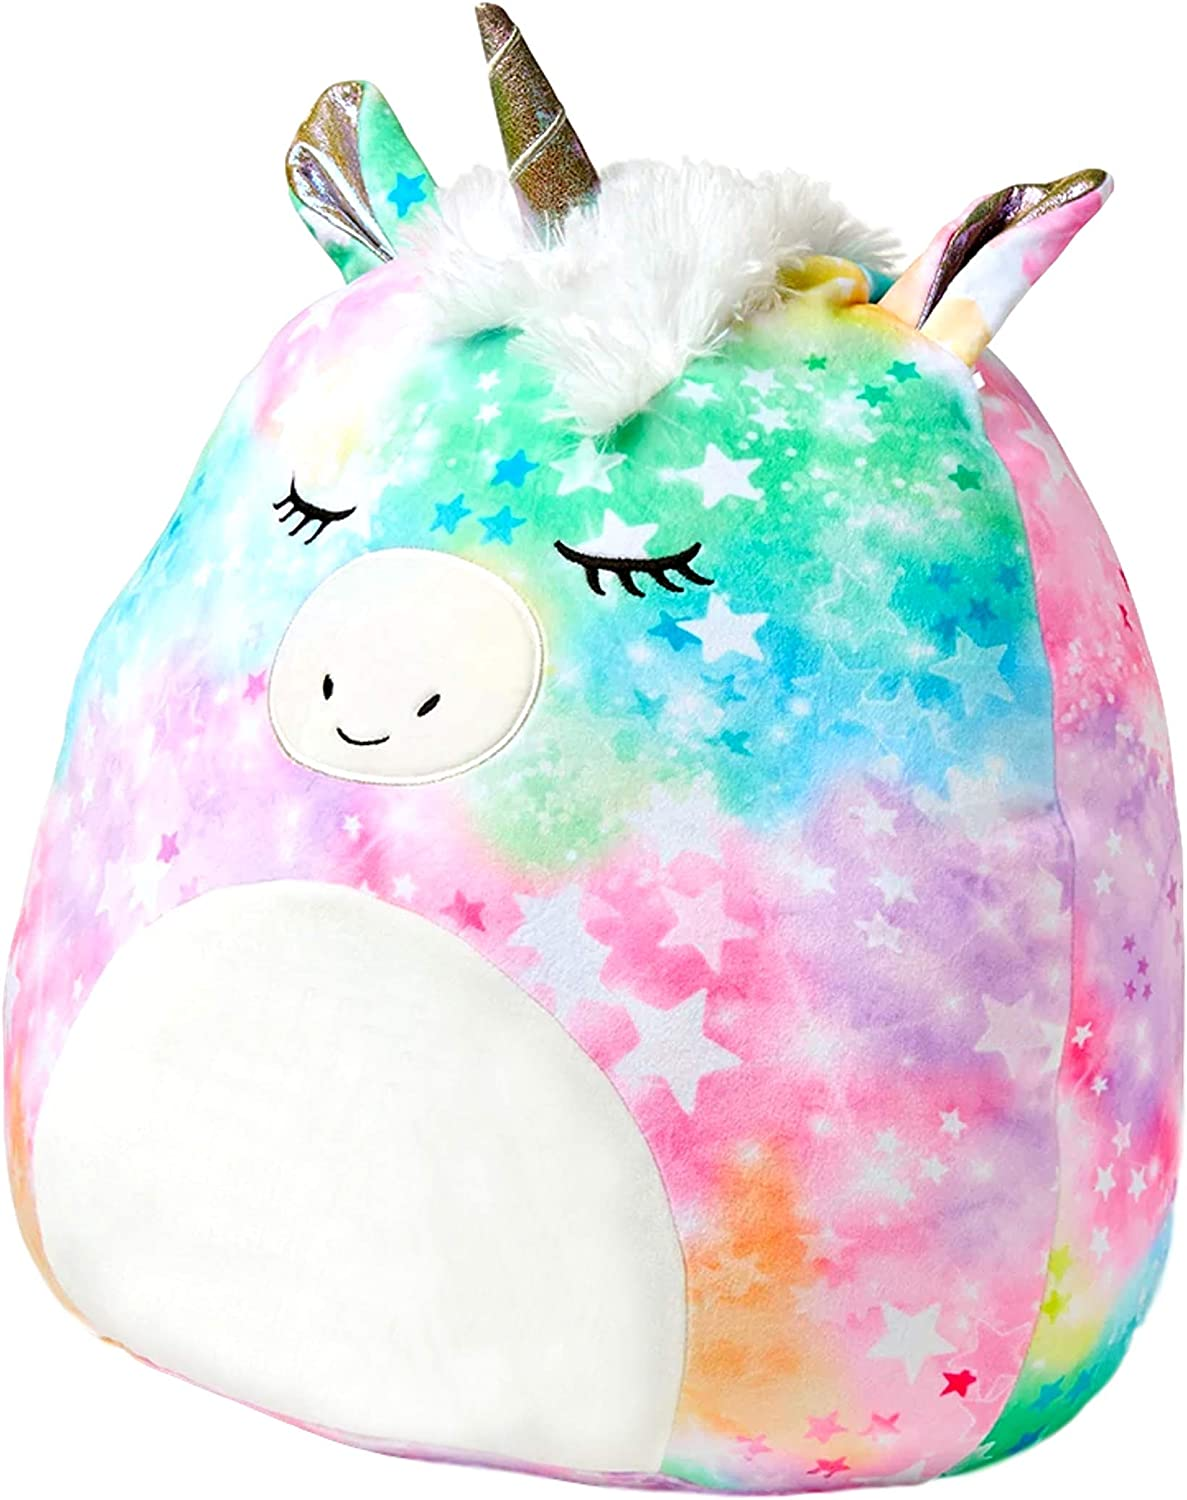 Justice for Girls Squishmallow Unicorn Pillow - Stuffed Animal Plush Pillow Large Size 20 Inch - Squishy Cuddle Pillow, Hug Pillow, Travel Pillow